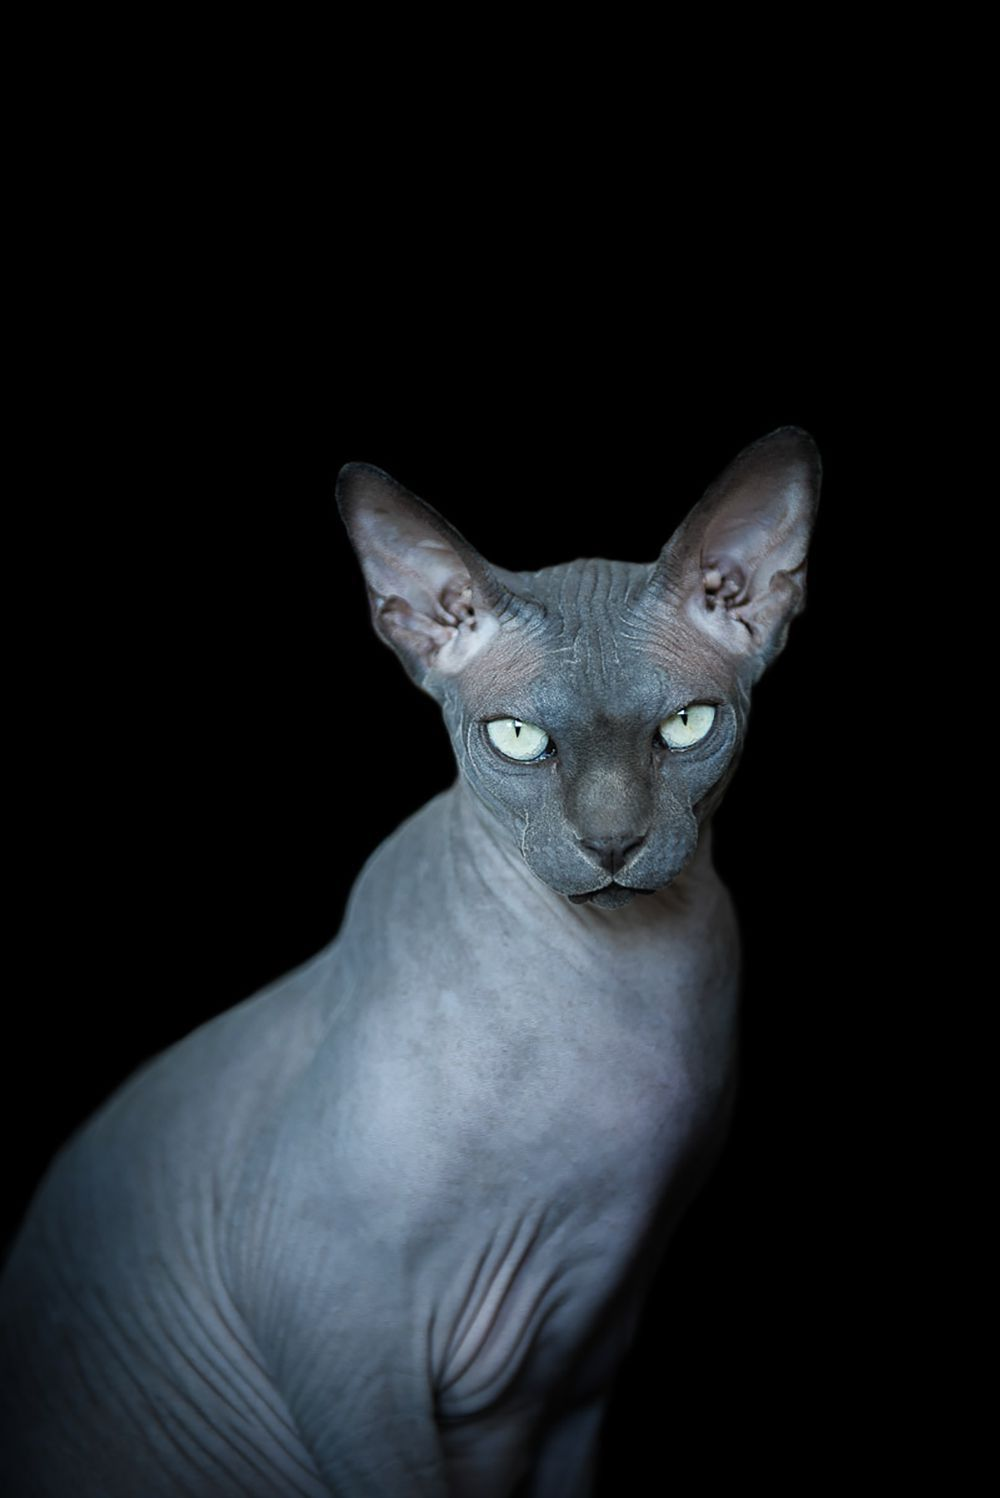 12 Photos Of Hairless Cats With Breasts That Will Make Your Jaw Drop Hairless Cat Cats Cat Anatomy